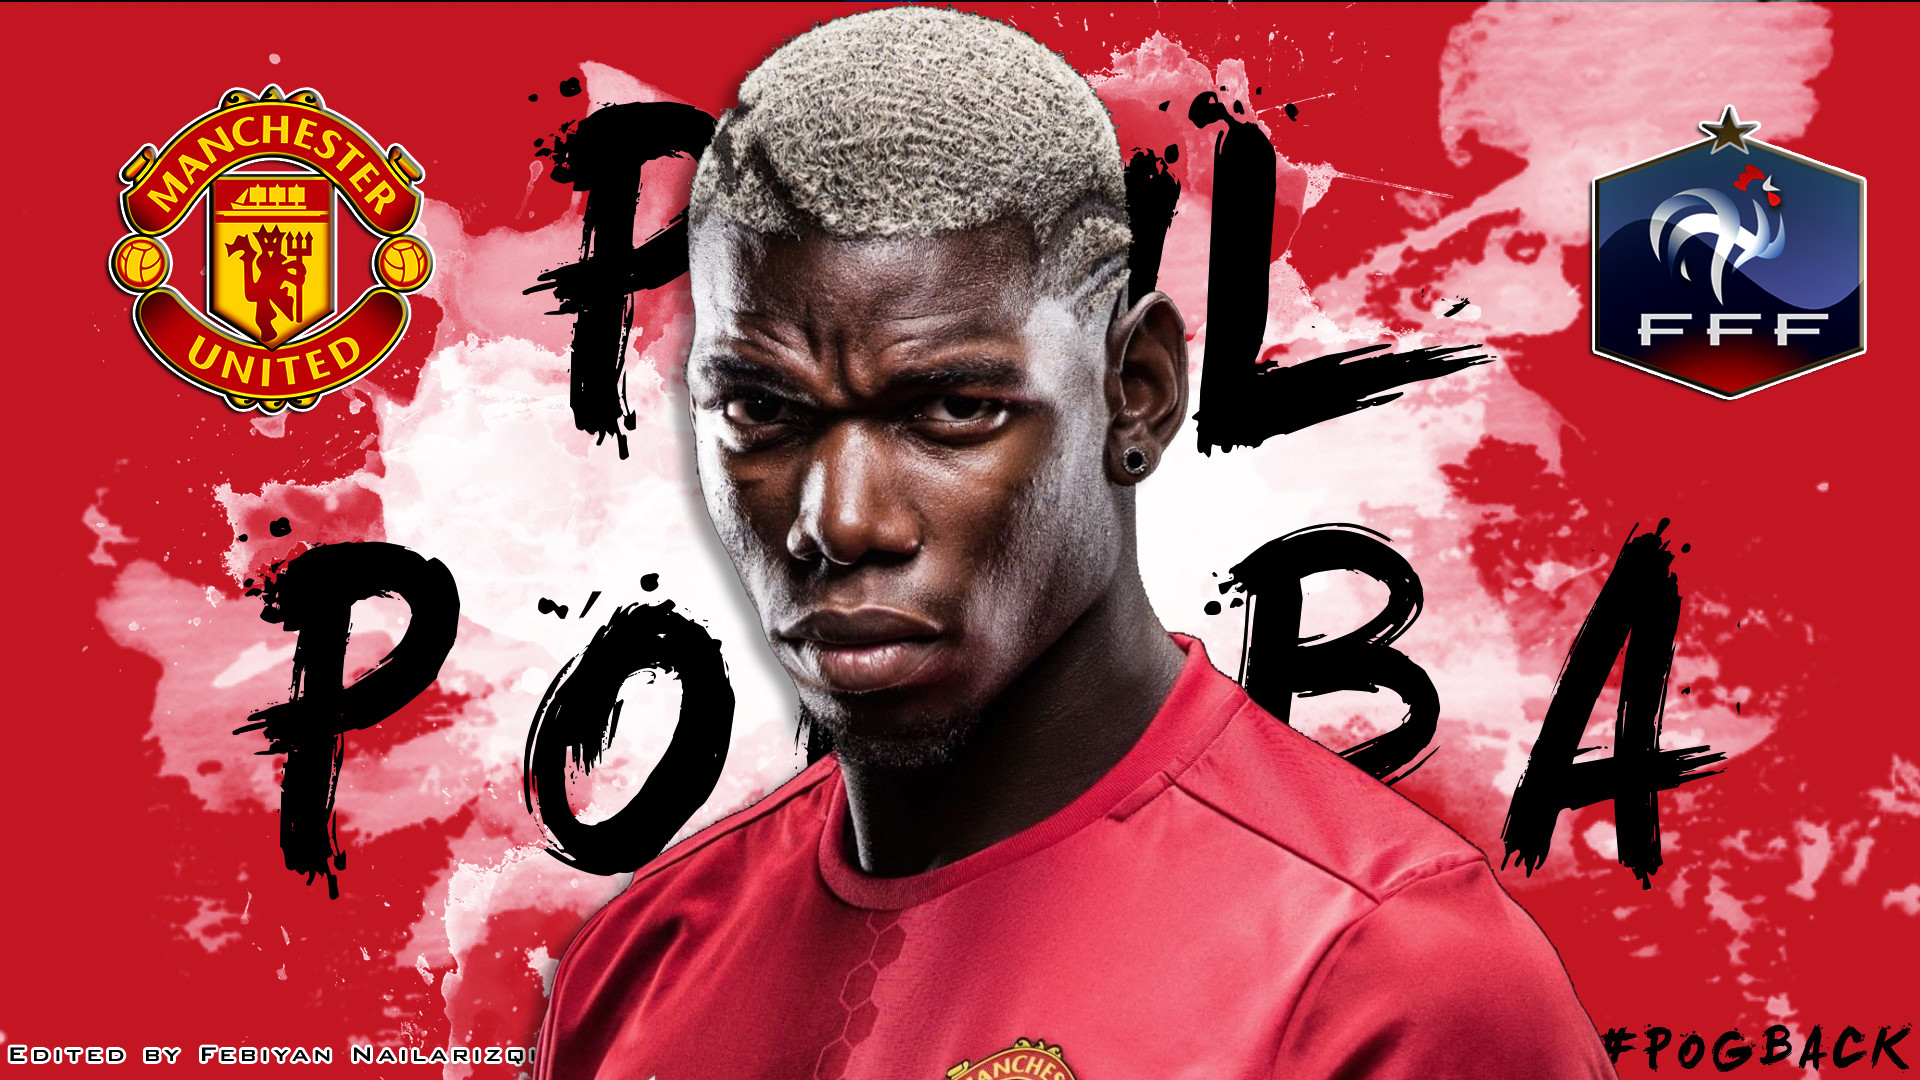 Paul Pogba Manchester United Wallpapers (89+ Images